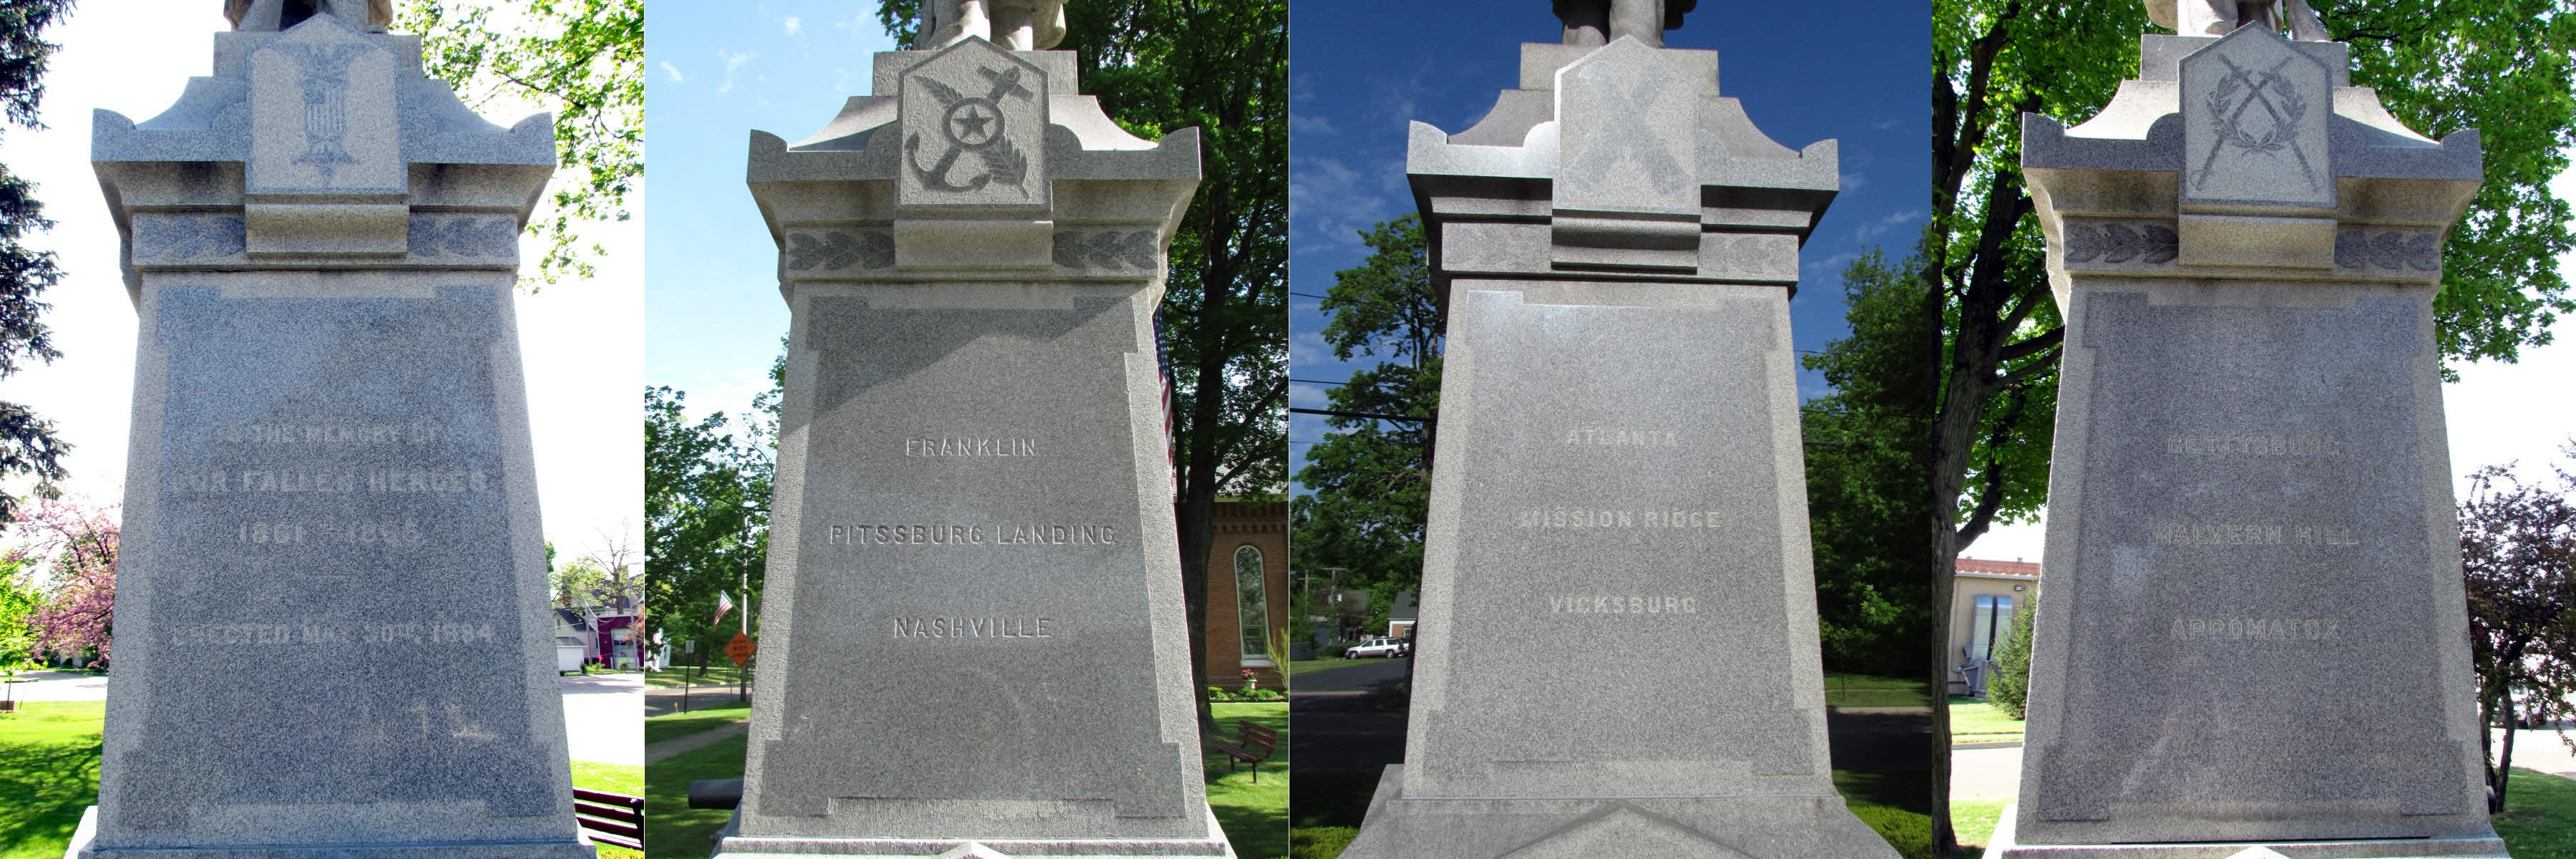 Inscriptions on Monument